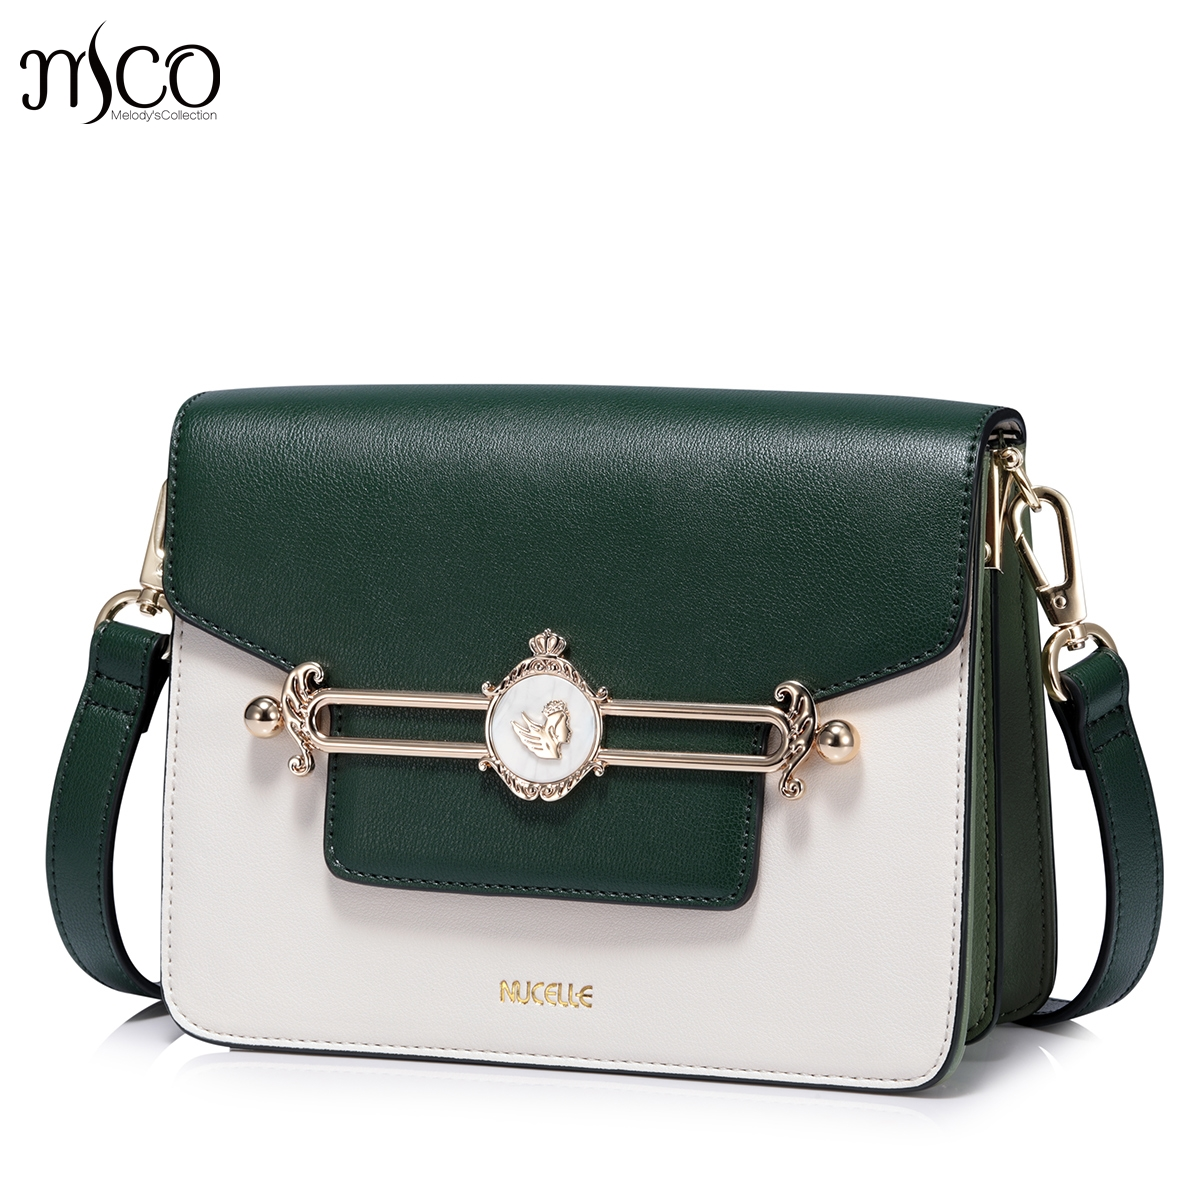 Just star designer brand luxury flower embroider handbags women Shoulder bags sac a main femme clutch crossbody a bag bolsas